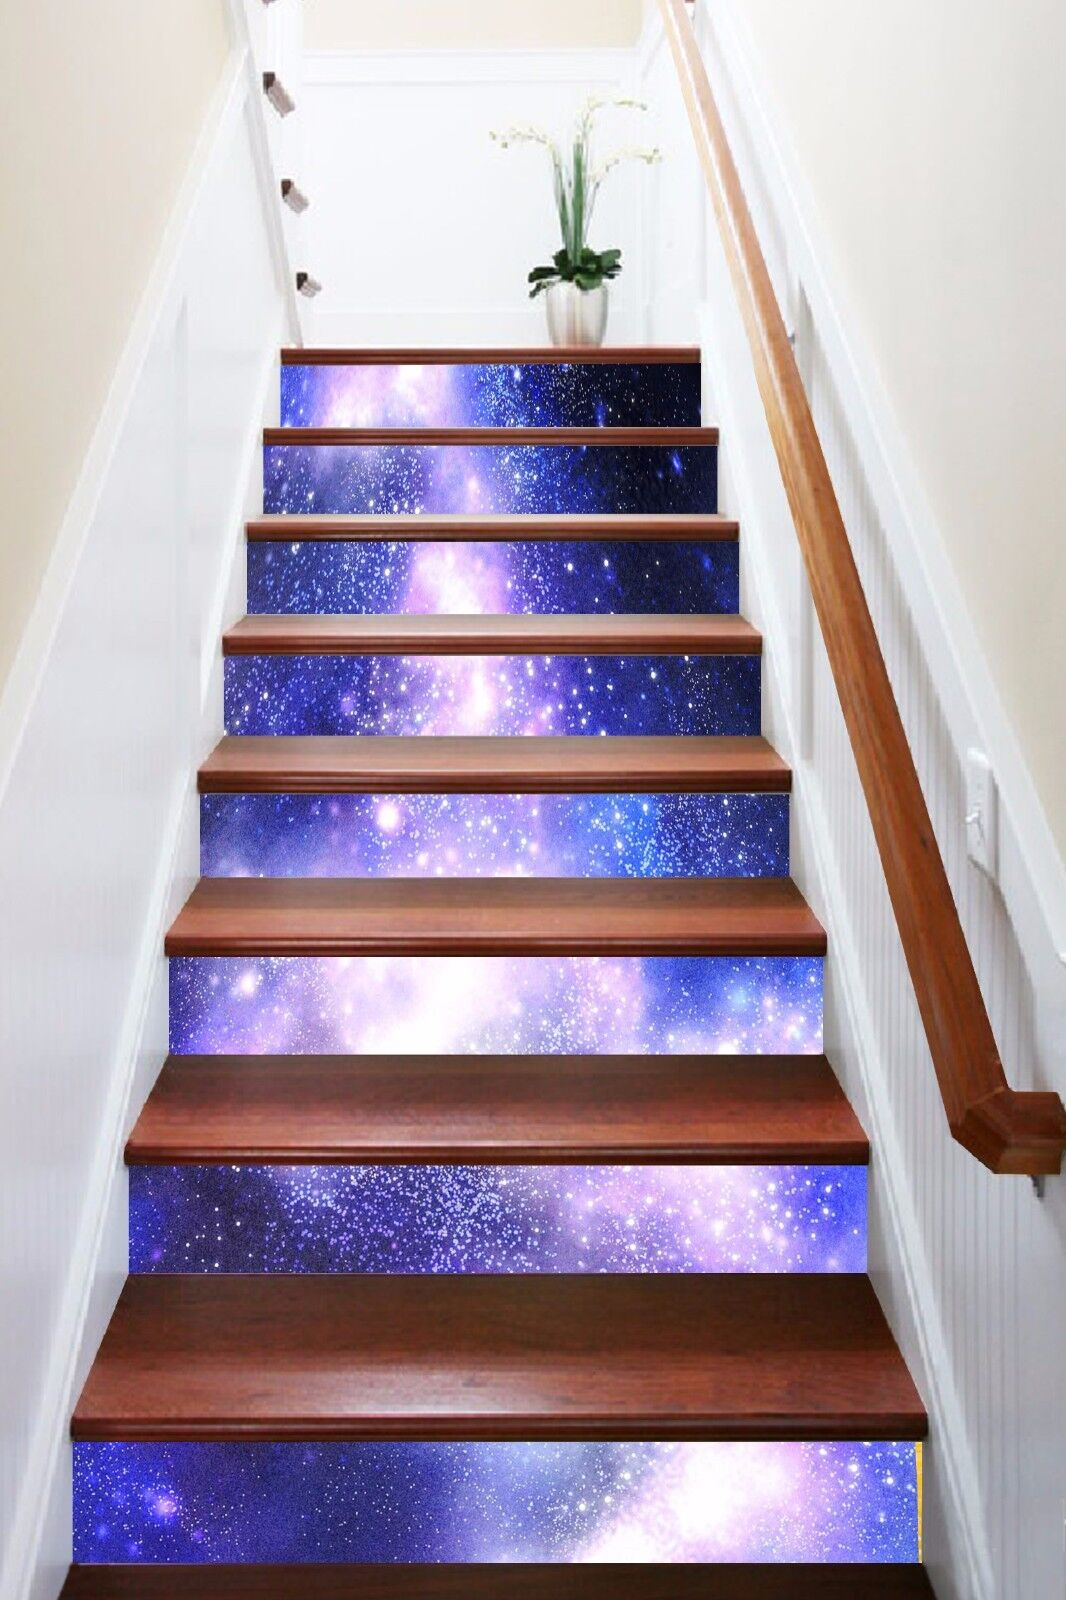 3D Shiny Stars 808 Stair Risers Decoration Photo Mural Vinyl Decal Wallpaper AU